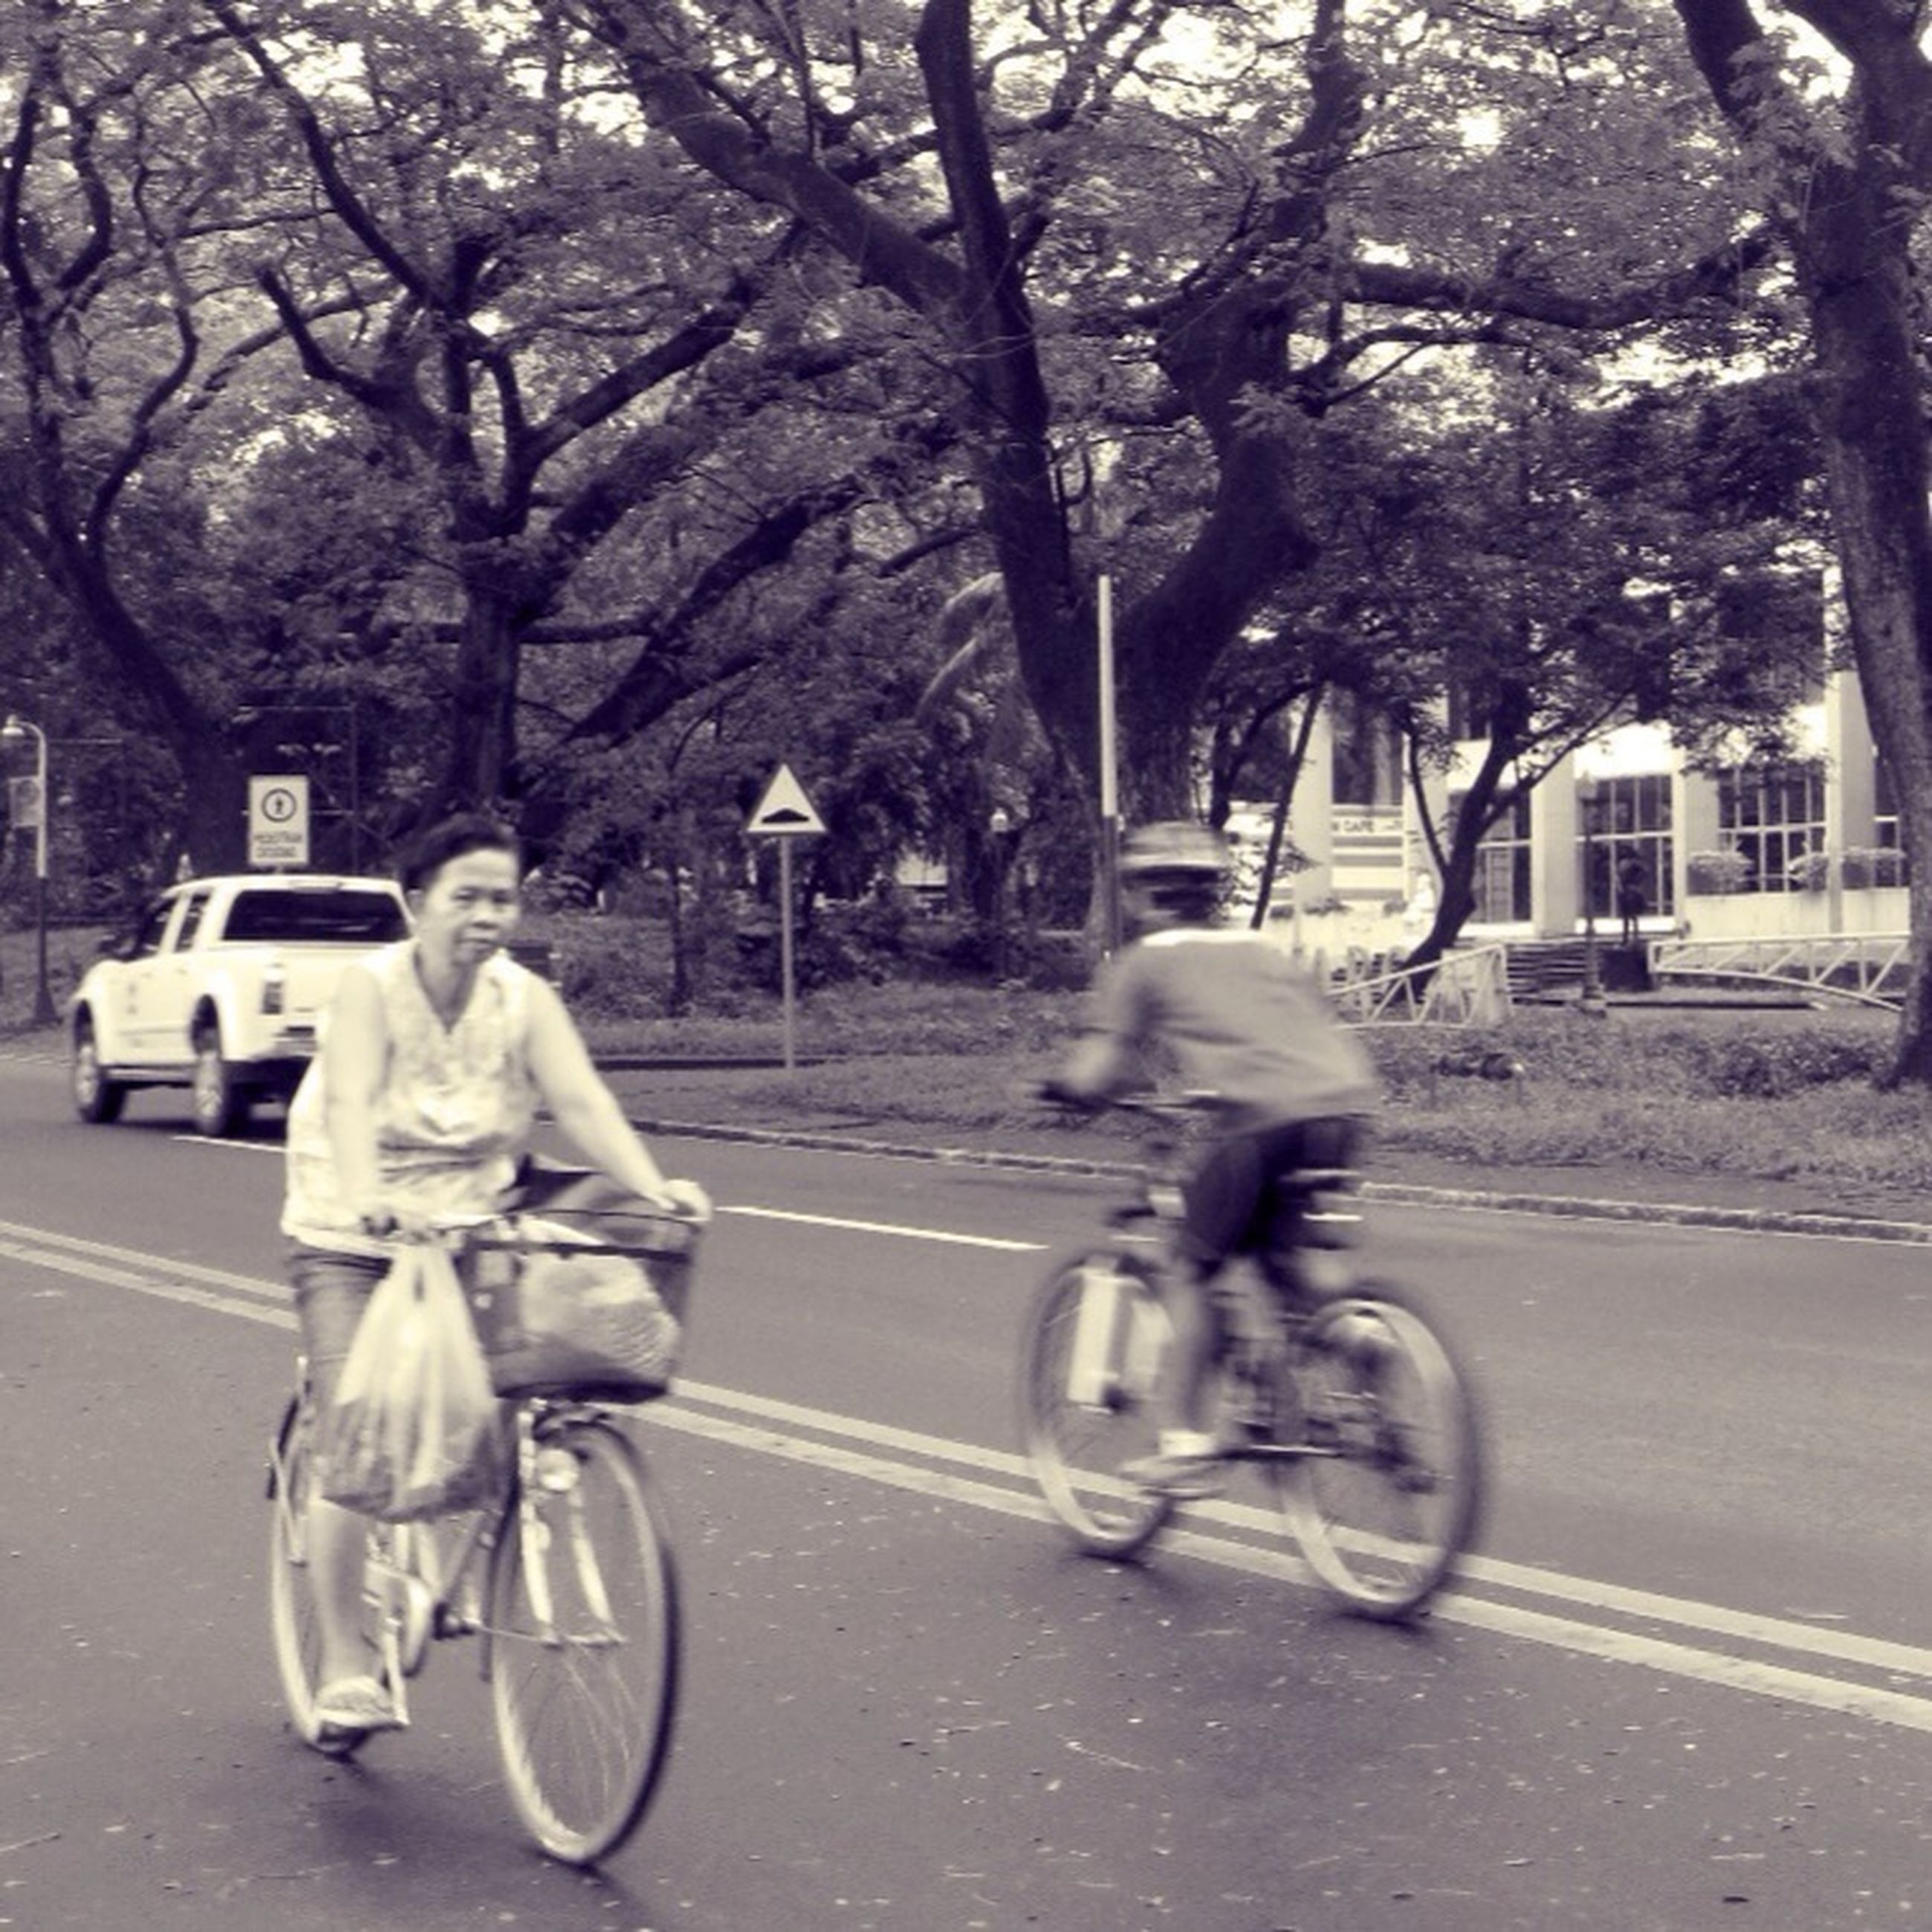 transportation, land vehicle, mode of transport, bicycle, street, tree, full length, riding, road, men, lifestyles, building exterior, car, cycling, city, on the move, leisure activity, walking